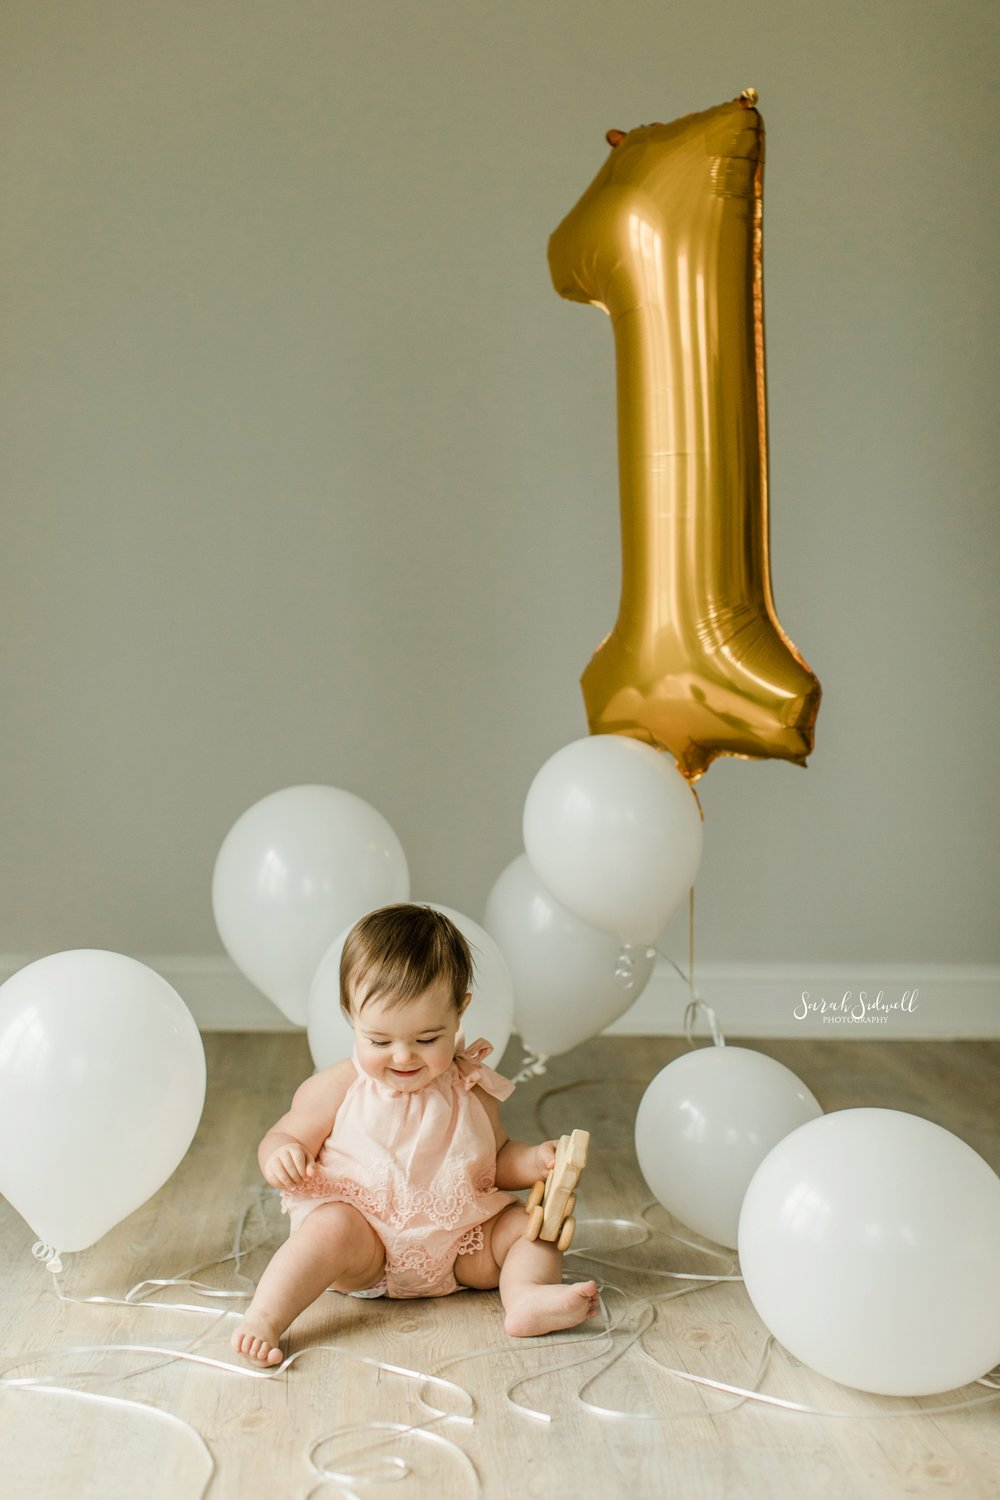 A baby plays with balloons | Nashville Baby Photographer